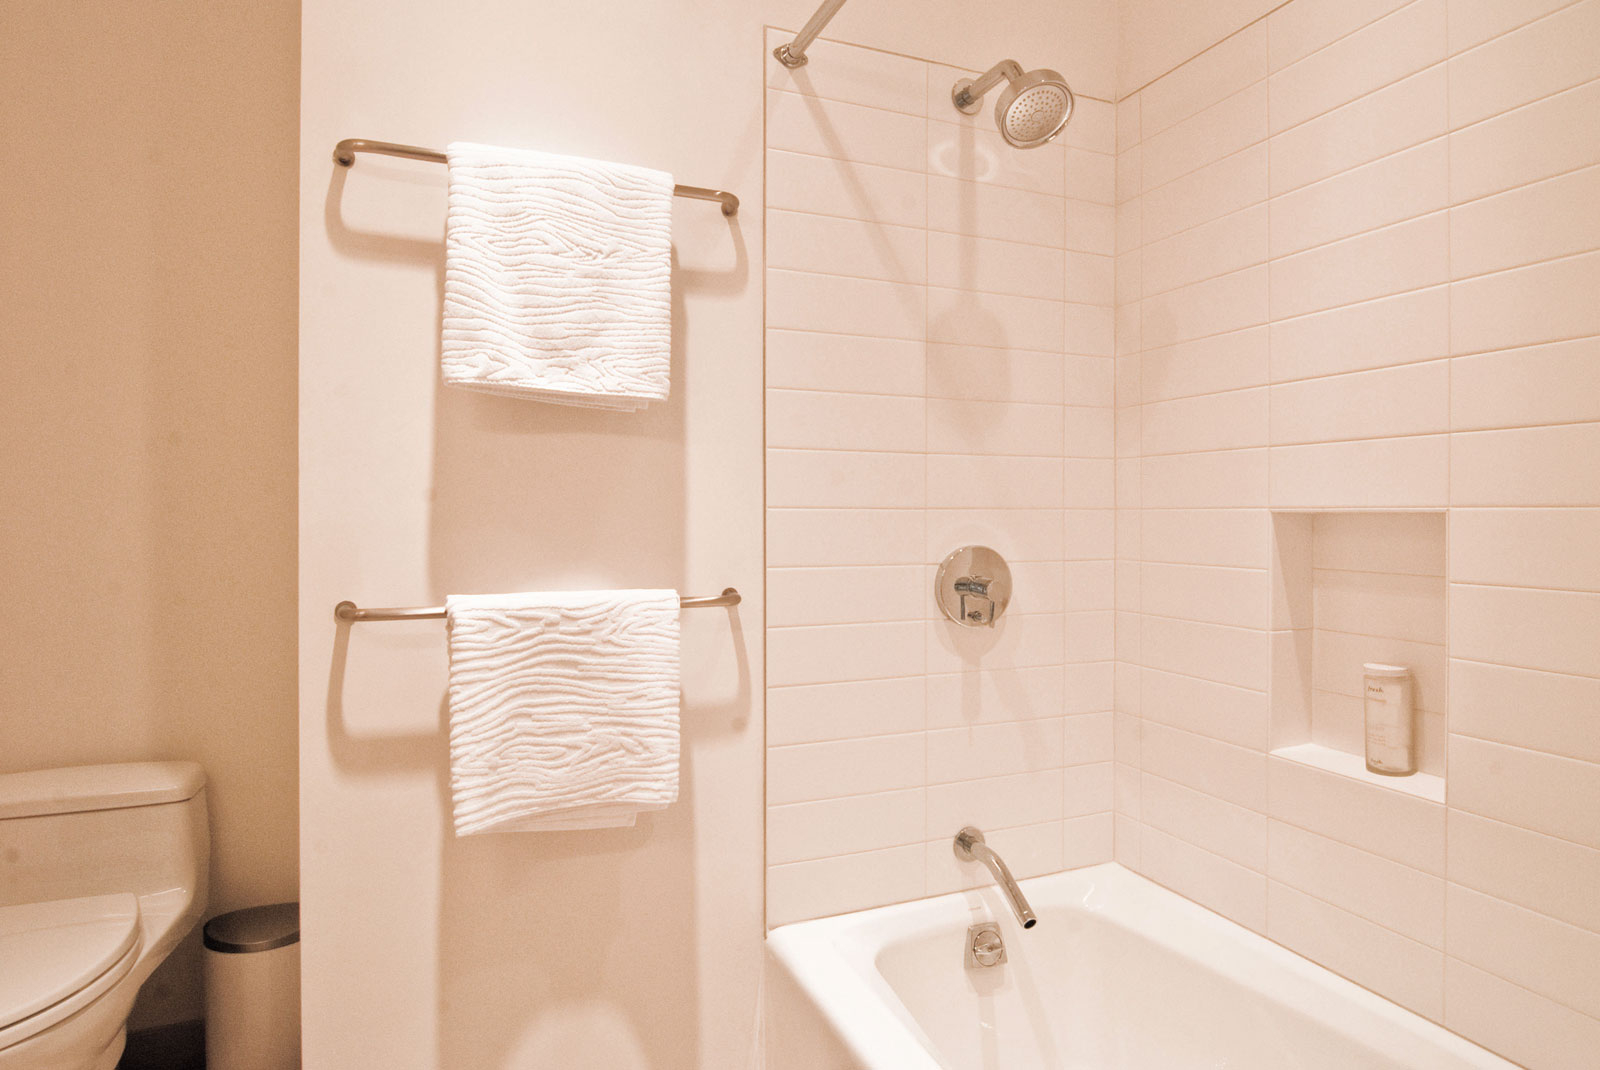 Towel Bar Height In Shower Towel Image Aginggracefullyshow within dimensions 1600 X 1070